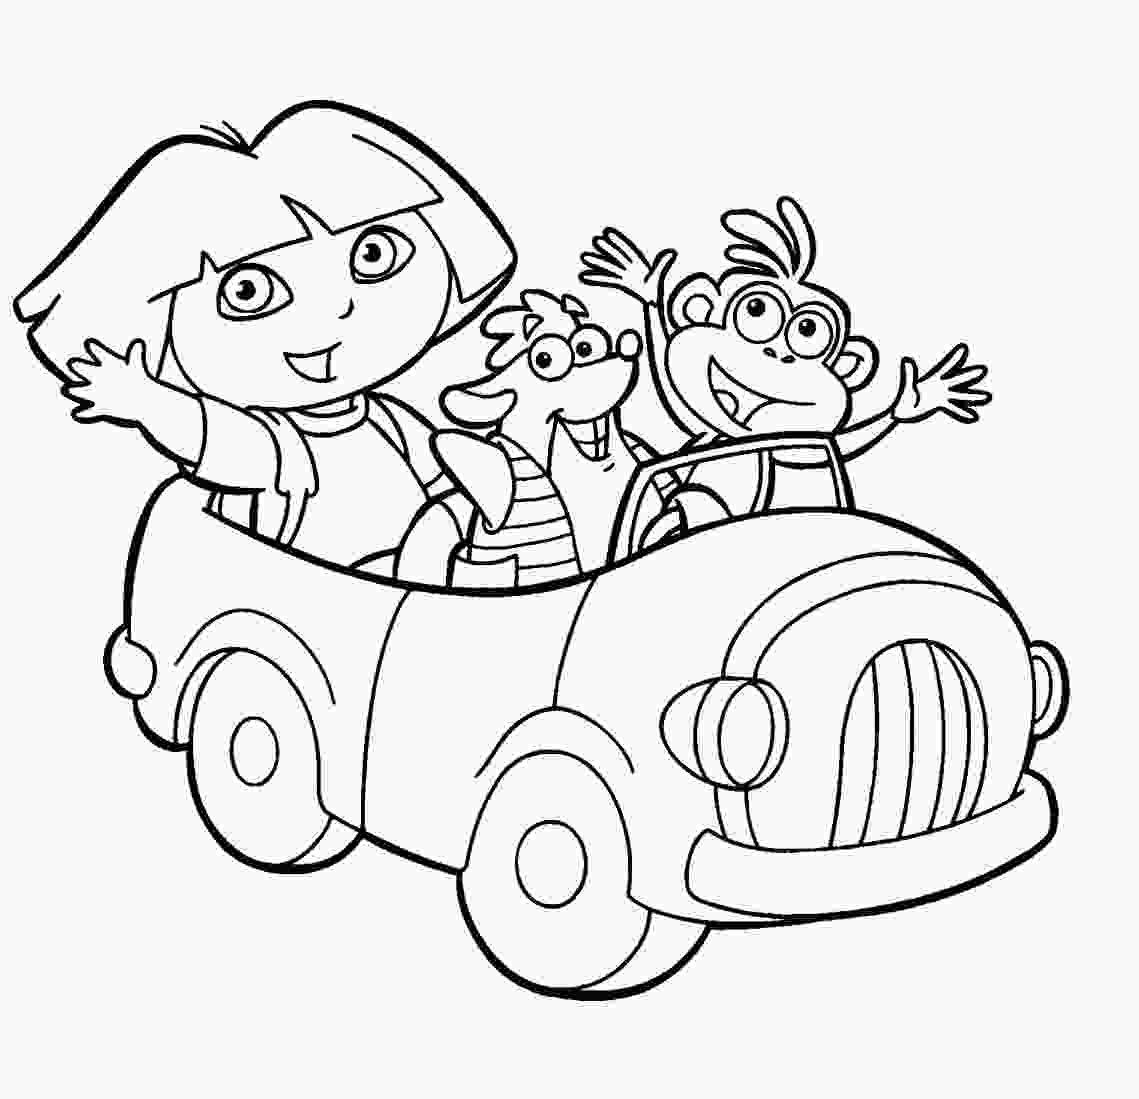 dora colouring pages printable dora the explorer coloring pages minister coloring